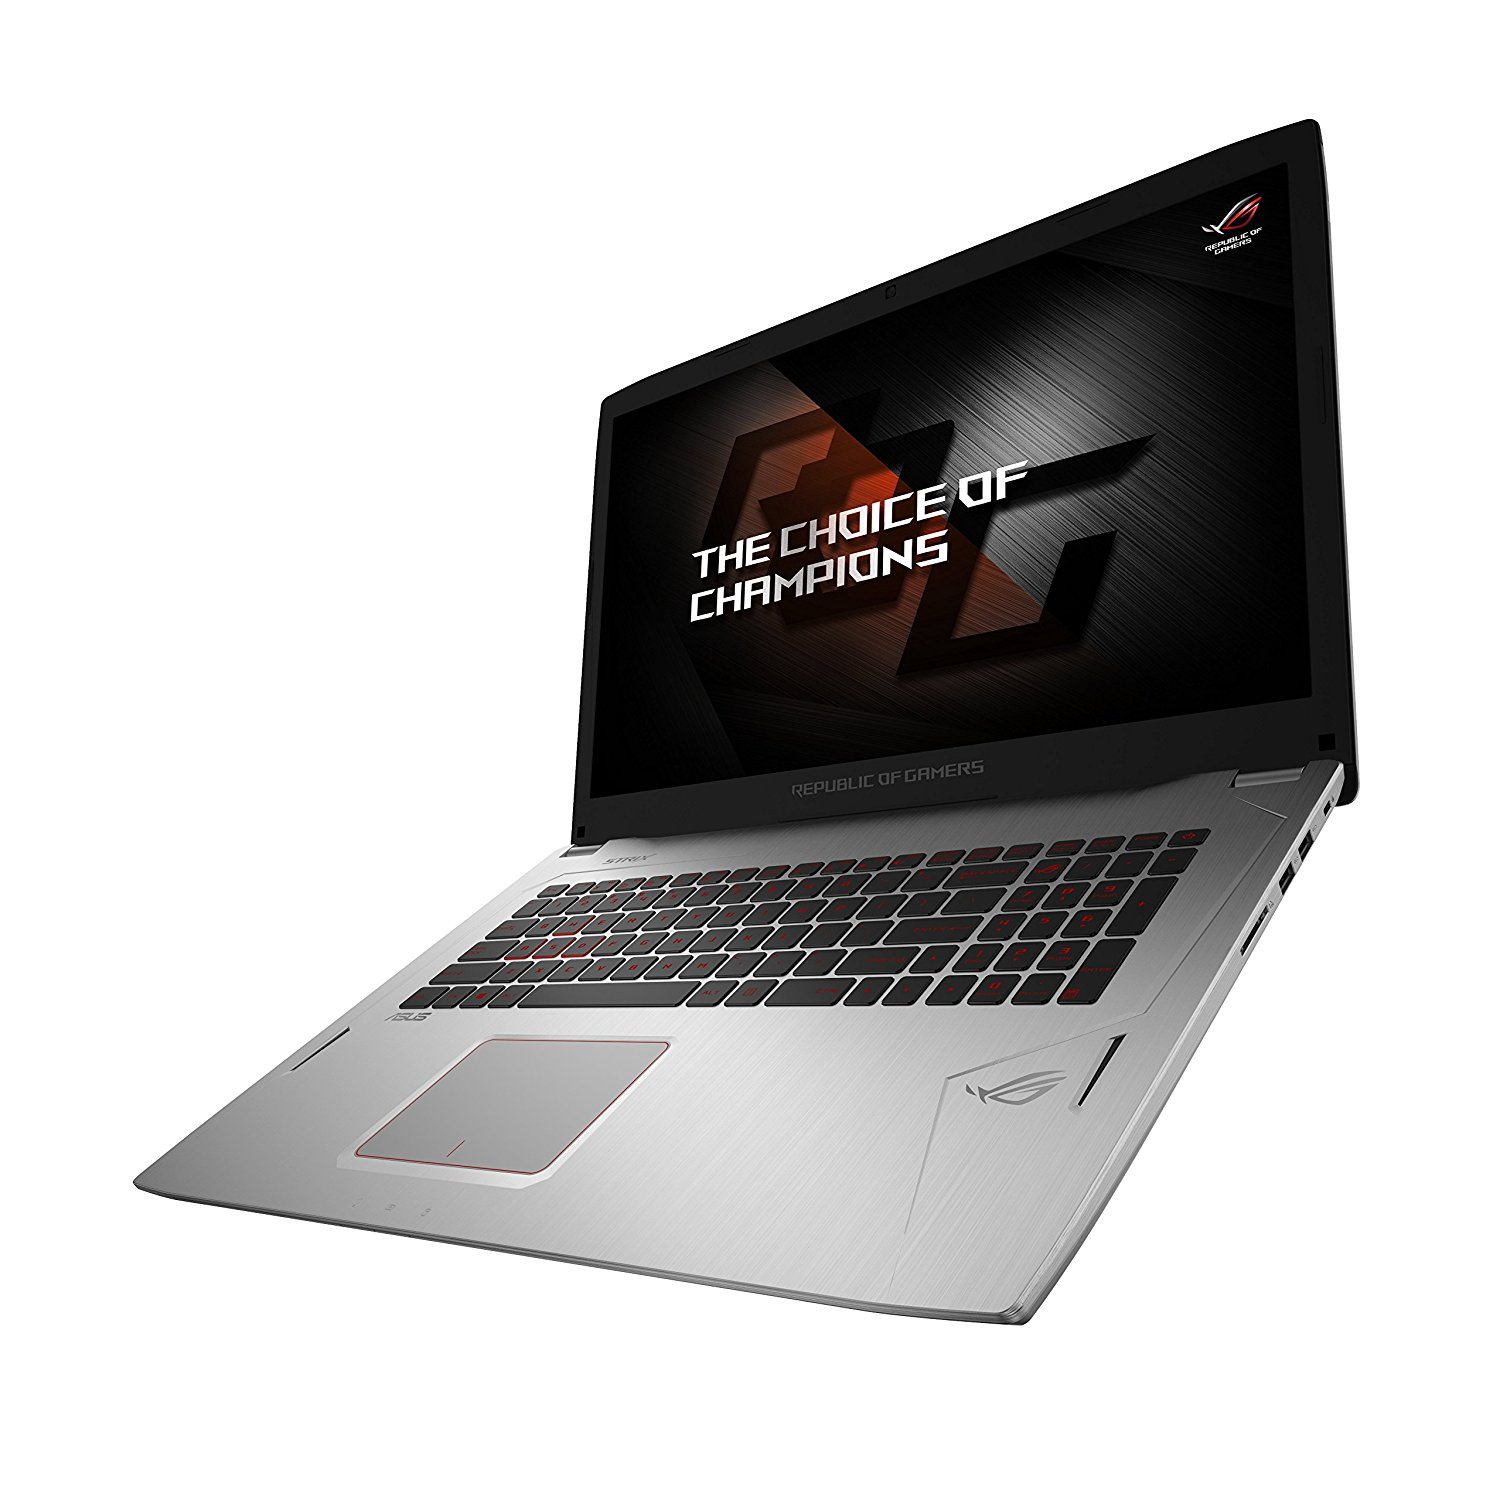 Asus ROG GL702VS-GC238T PC portable Gamer pas cher - Soldes Ordinateur Portable Amazon